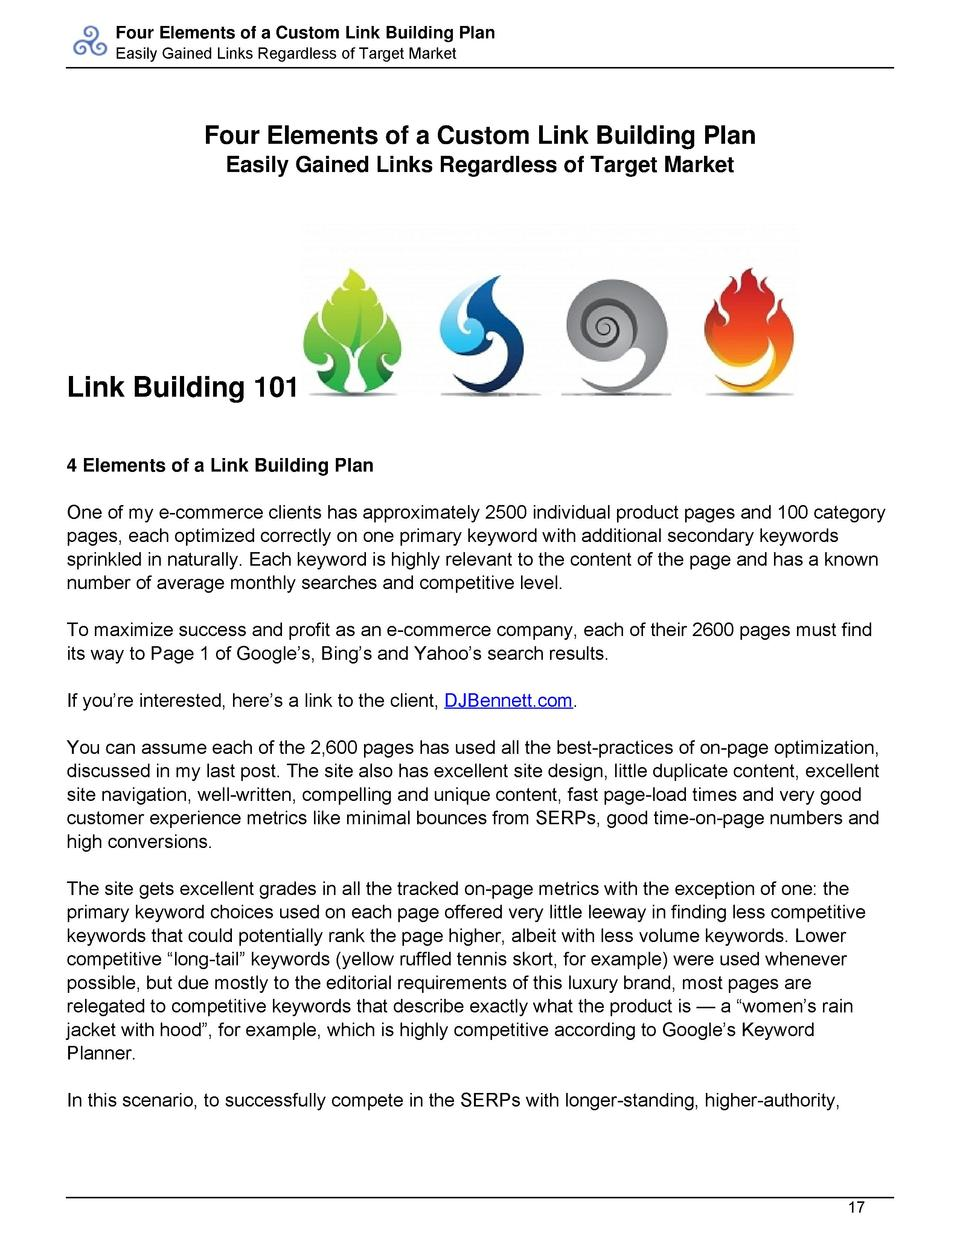 Four Elements of a Custom Link Building Plan Easily Gained Links Regardless of Target Market  Four Elements of a Custom Li...